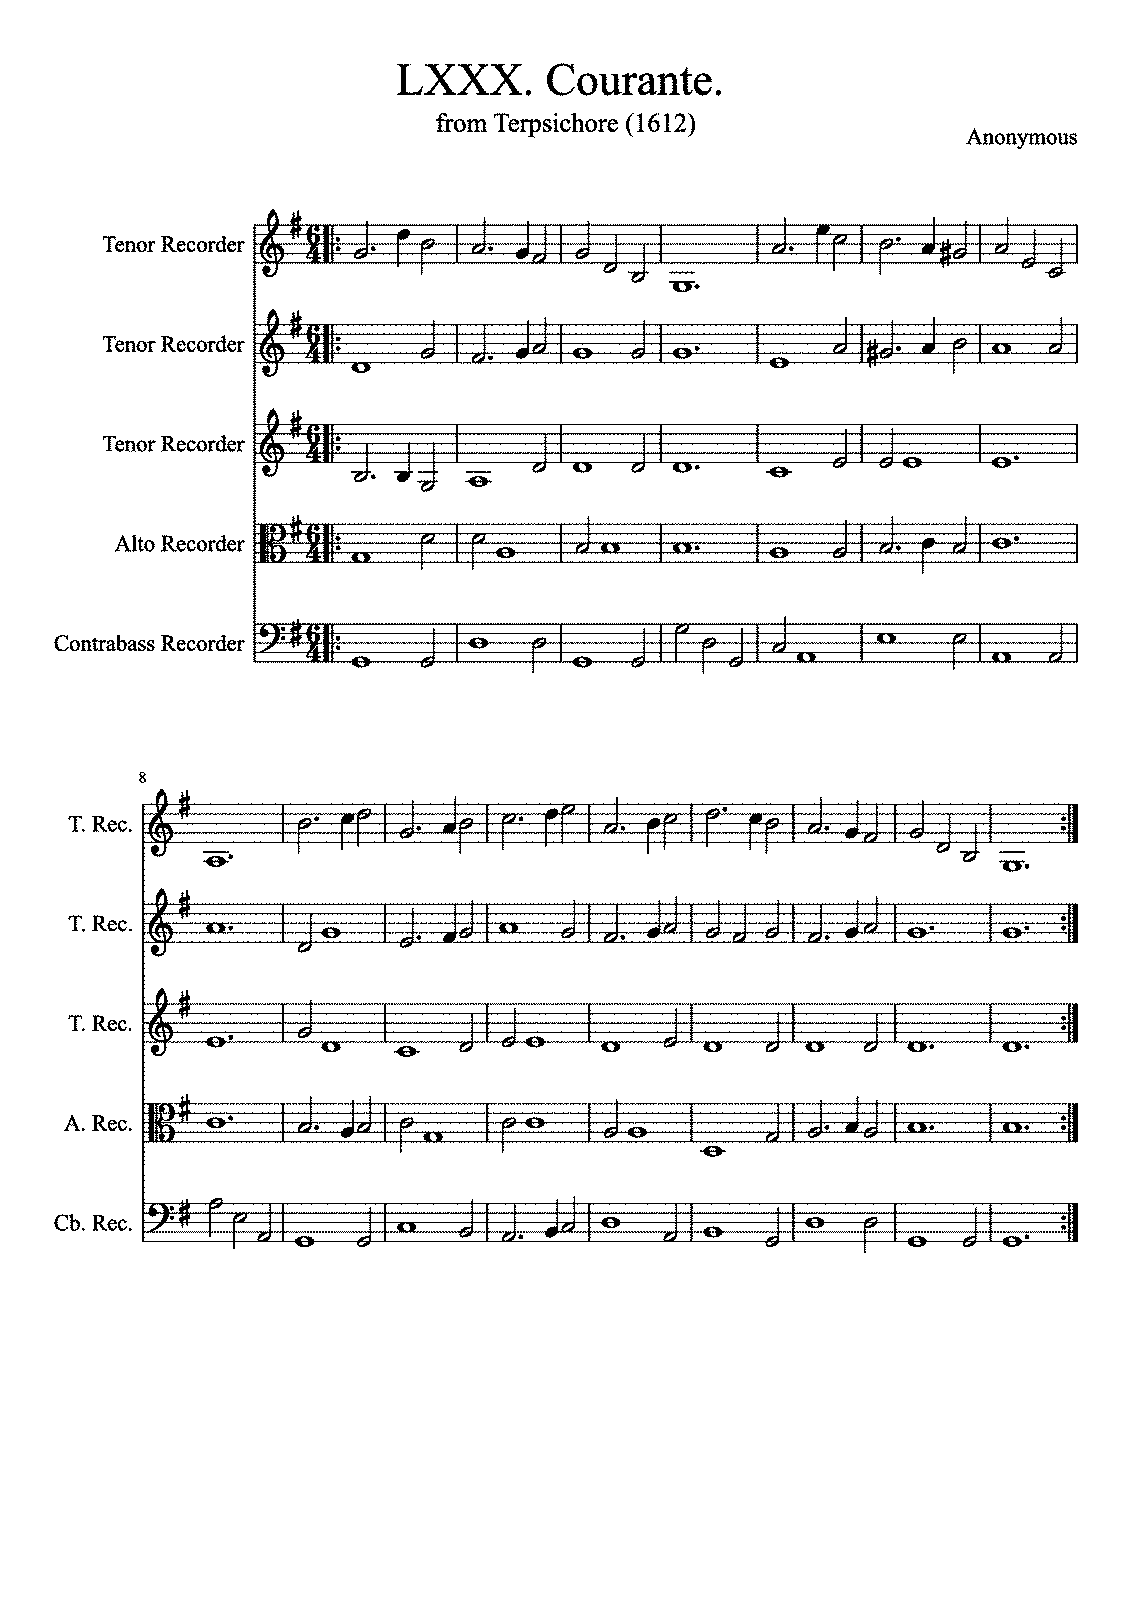 PMLP590582-LXXX Courante from Terpsichore Anonymous 1612.pdf